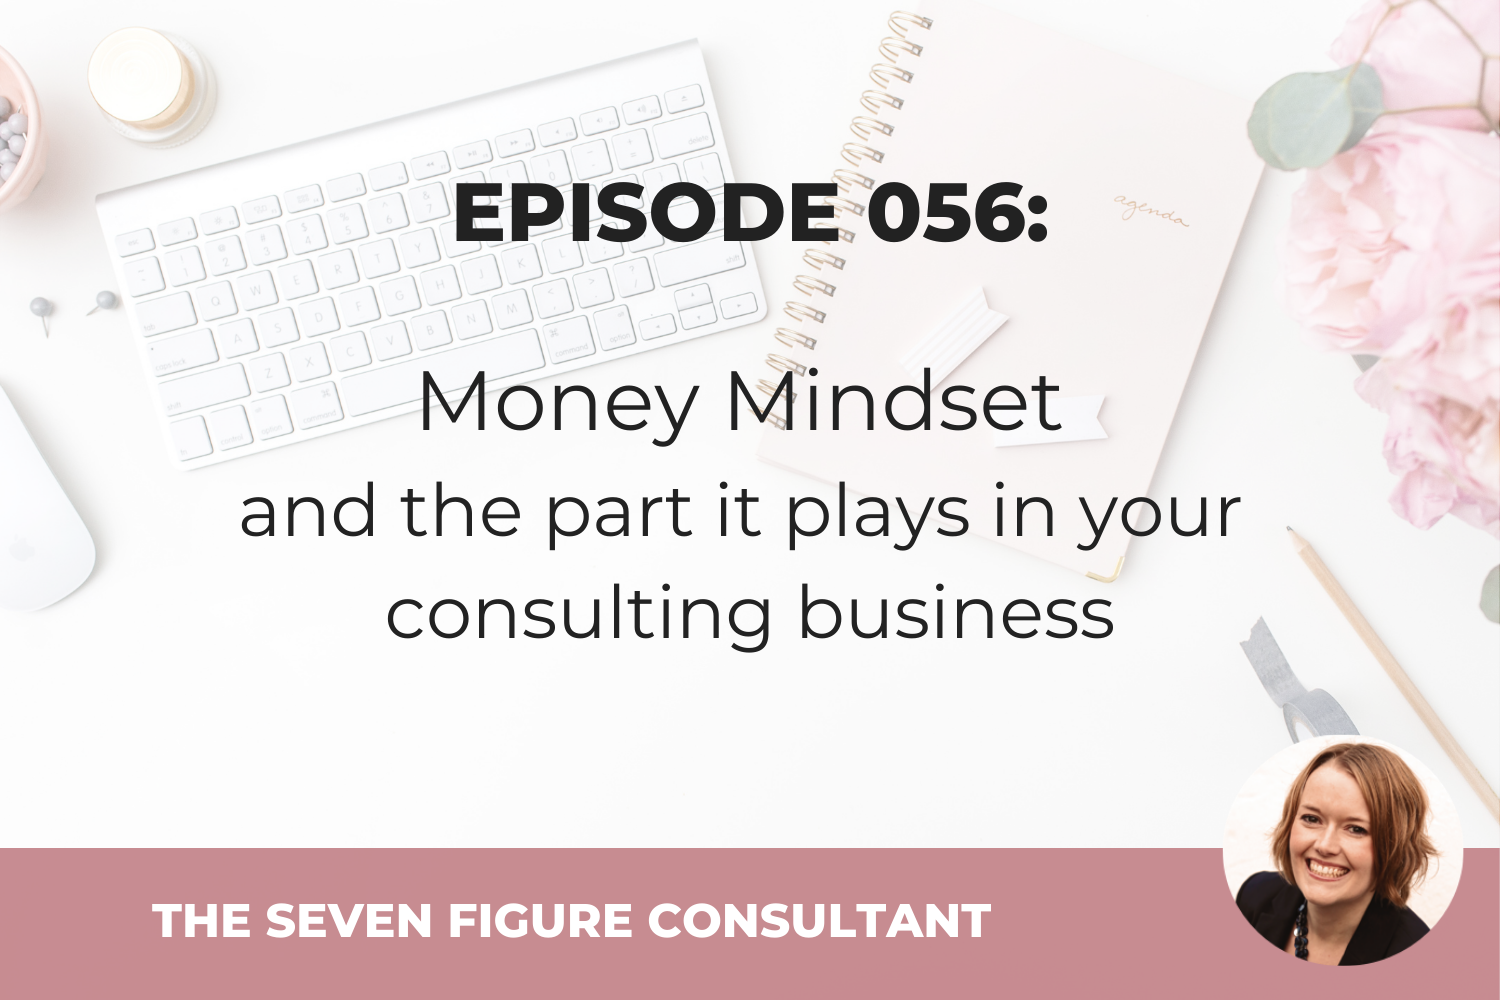 Episode 056: Money Mindset and the part it plays in your consulting business